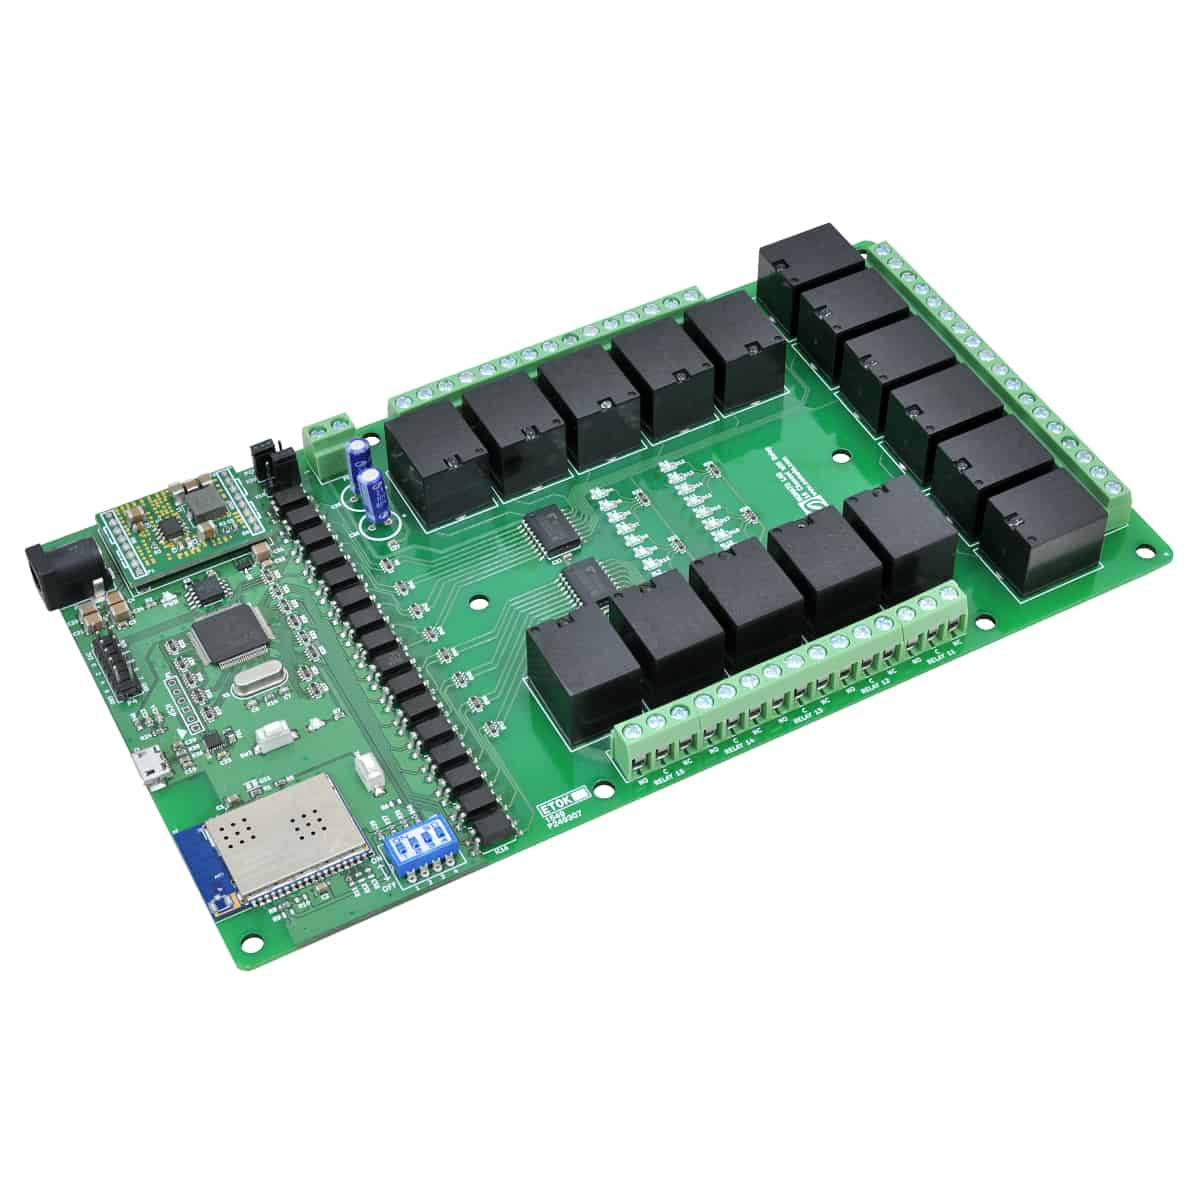 16 Channel Wifi Relay Module Numato Lab Help Center How To Build Electronic Selector For 10 Sources With Display Drive 16channelwifirelay 1